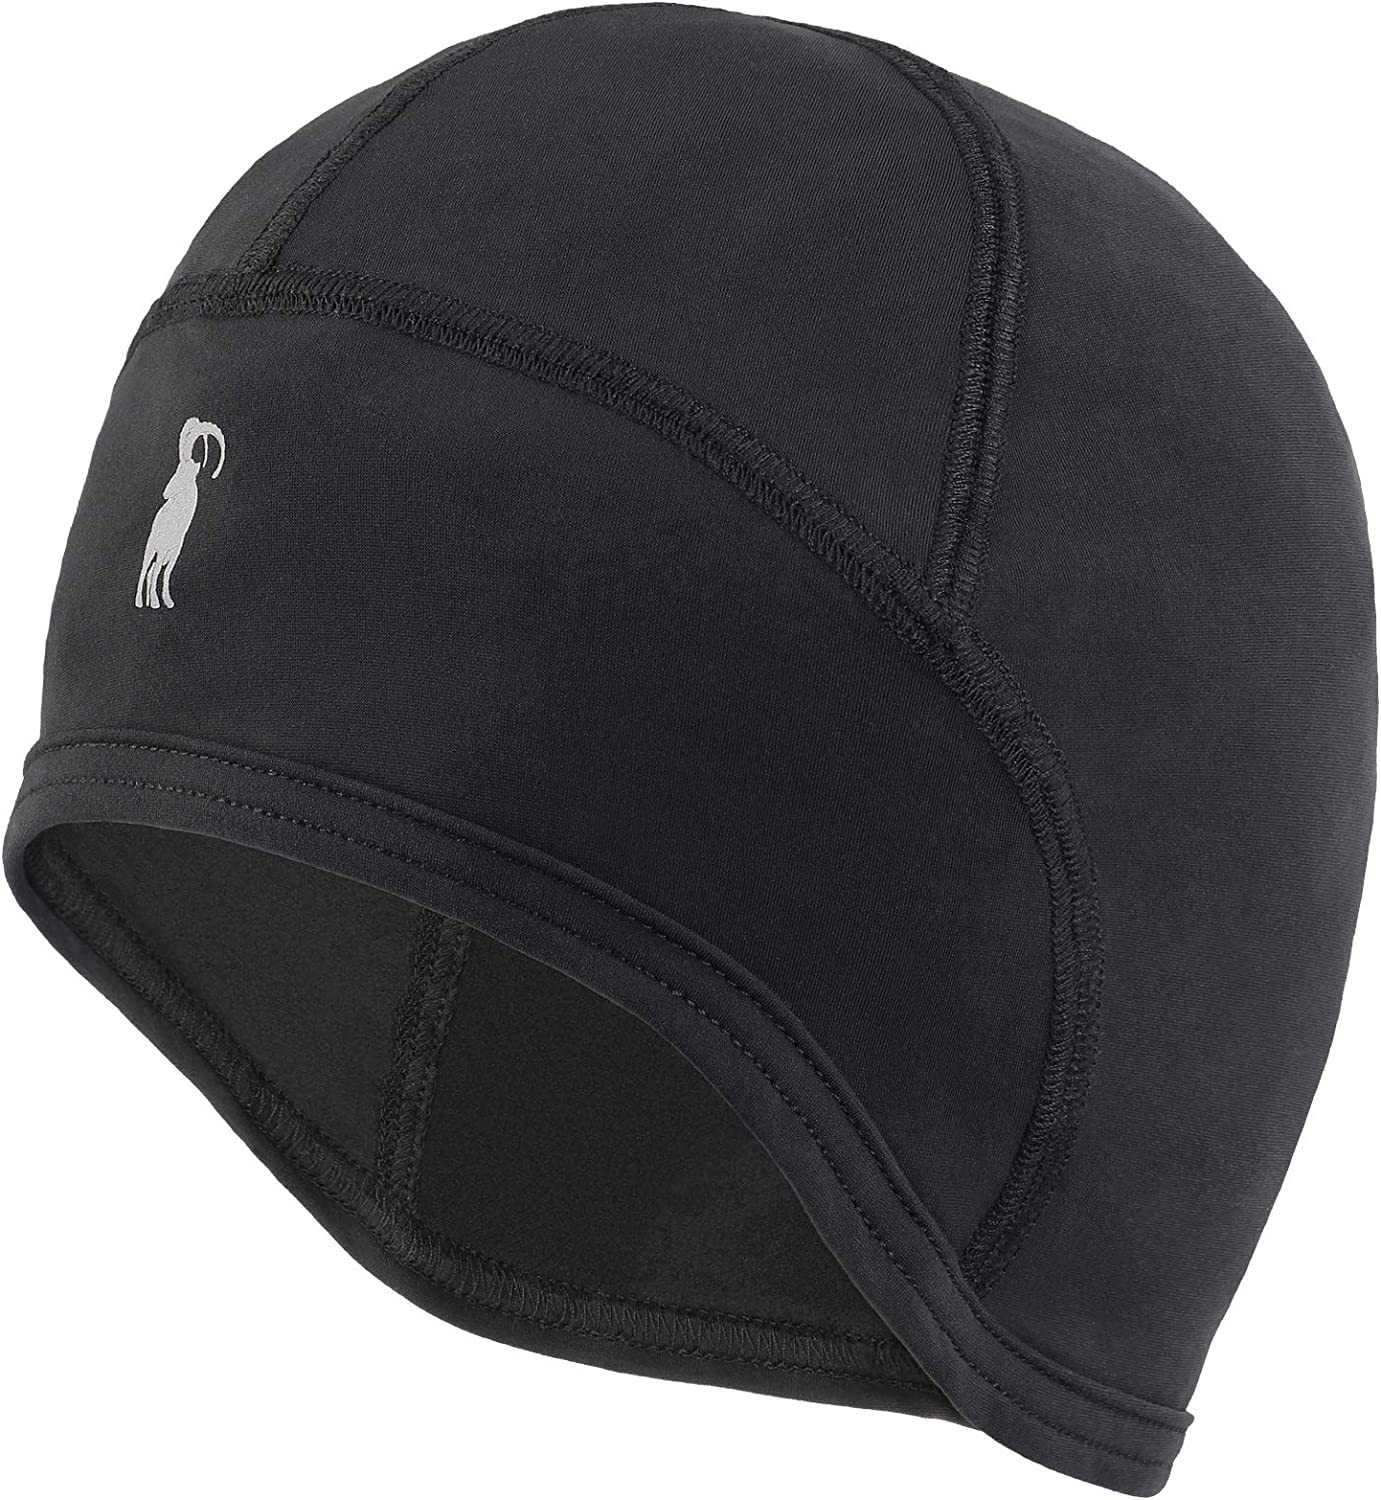 ALPIDEX Thermal Helmet Liner Skull Cap Cycling Beanie Stretchable Hat Thight Fit Regular Size